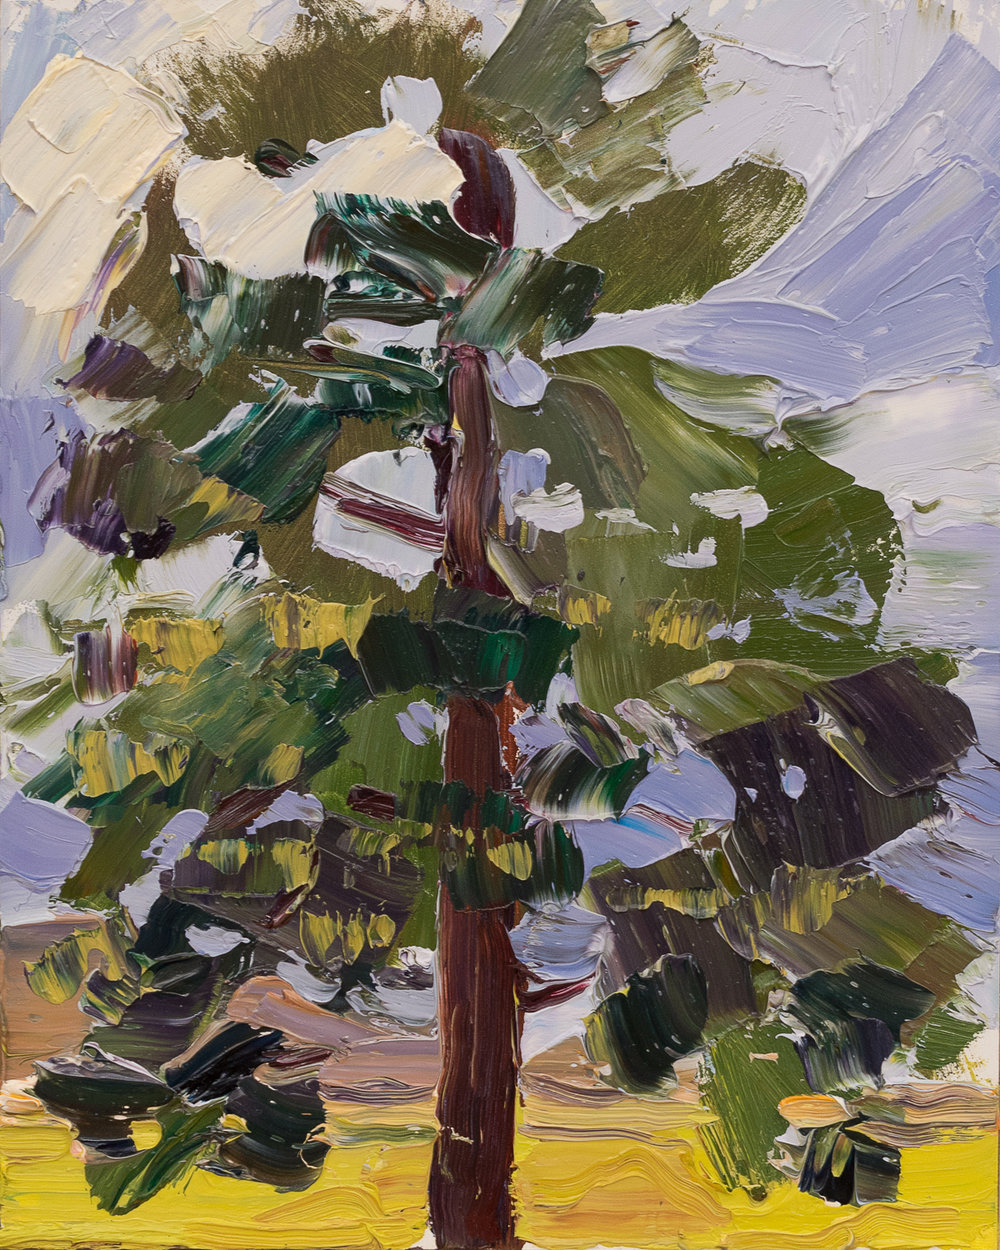 Lone Tree #10 - after rain palette study